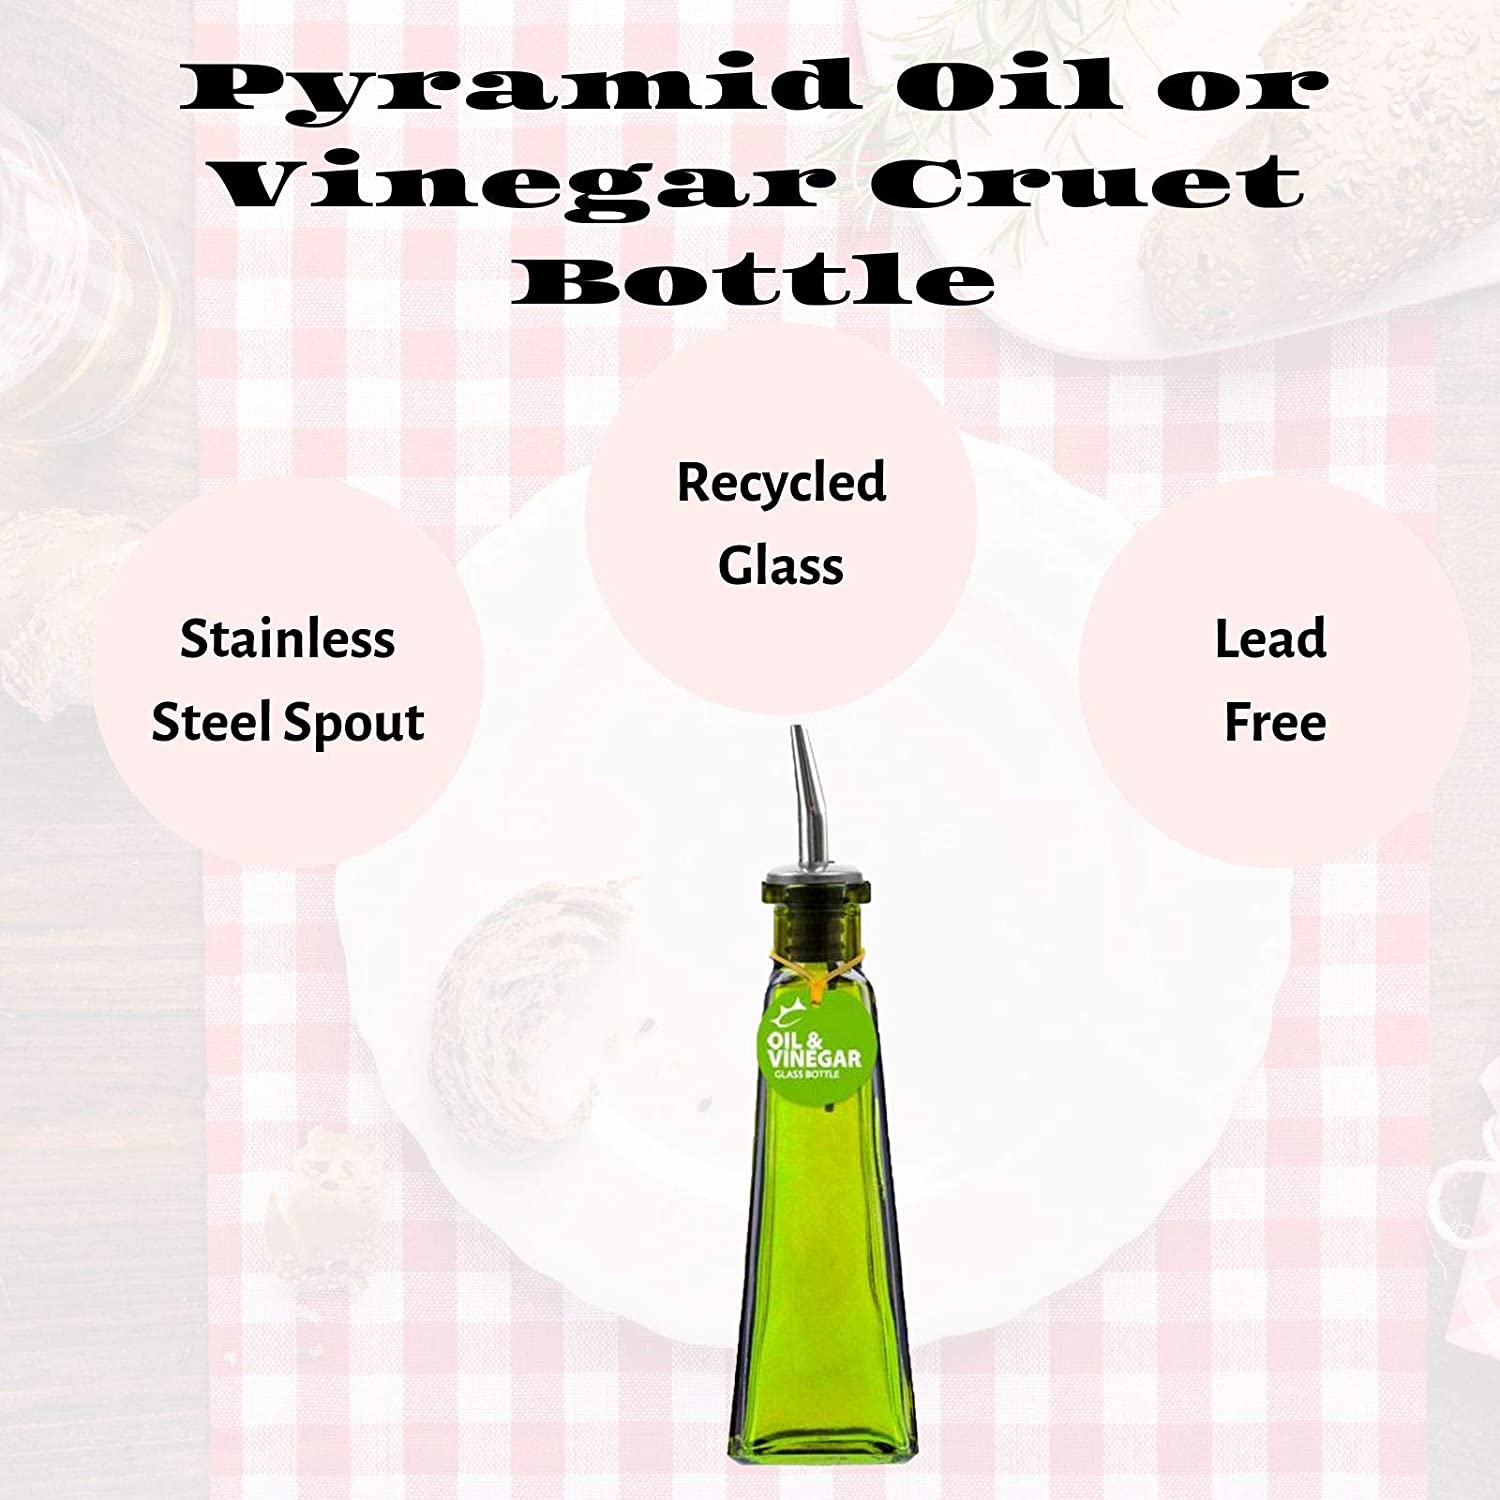 9 inches tall, Couronne Co Pyramid Recycled Glass Bottle with Glass Top B6517T